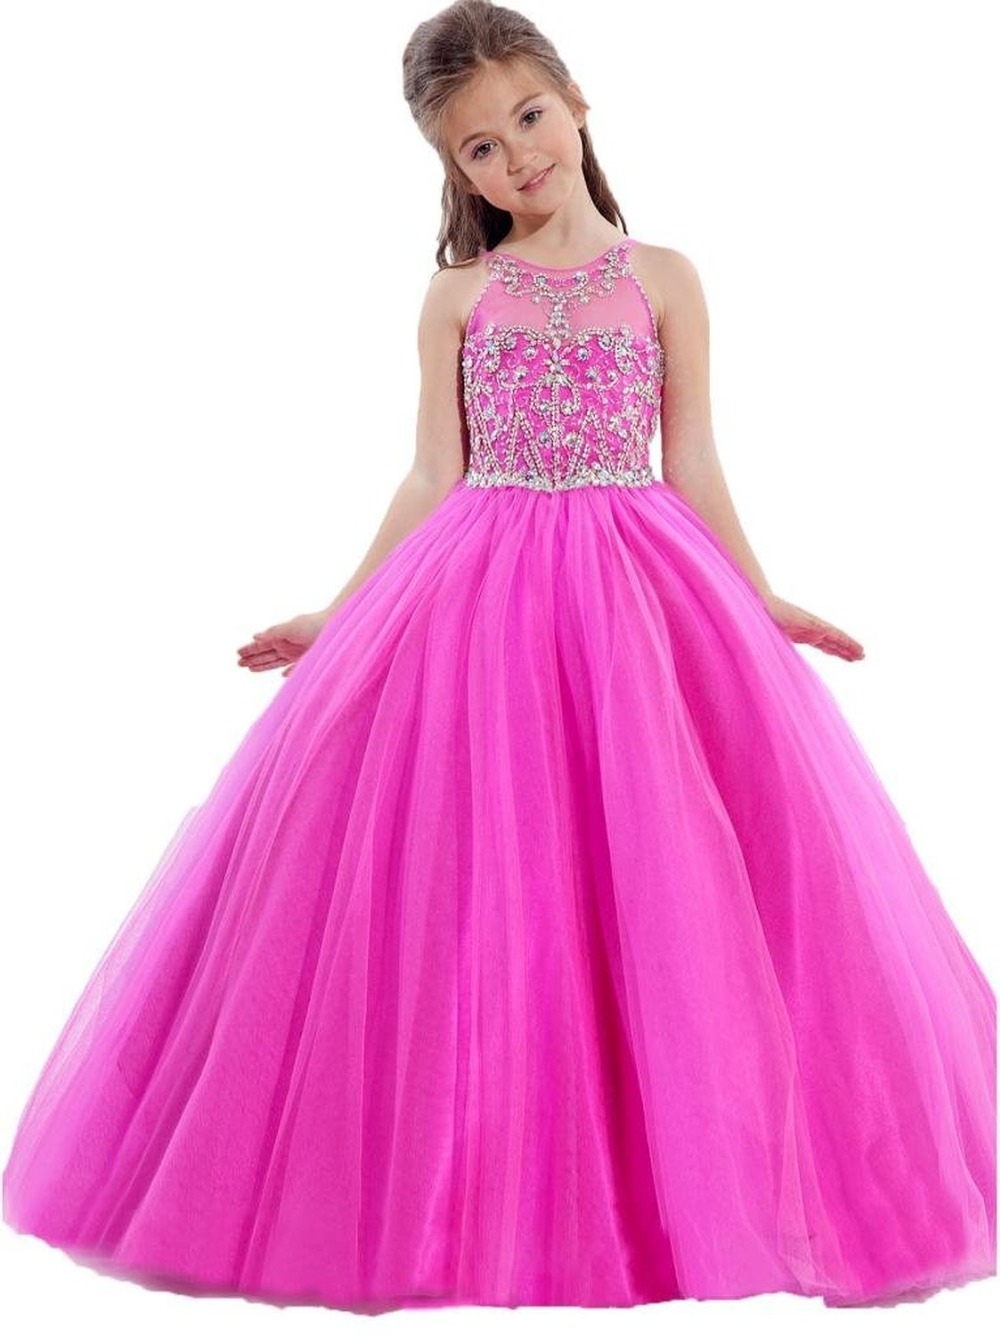 2015 Beautiful Coral Princess Flower Girls Dresses Jewel Beads Sash Floor-Length Girl's Pageant Dresses Kids Party Gowns(China (Mainland))